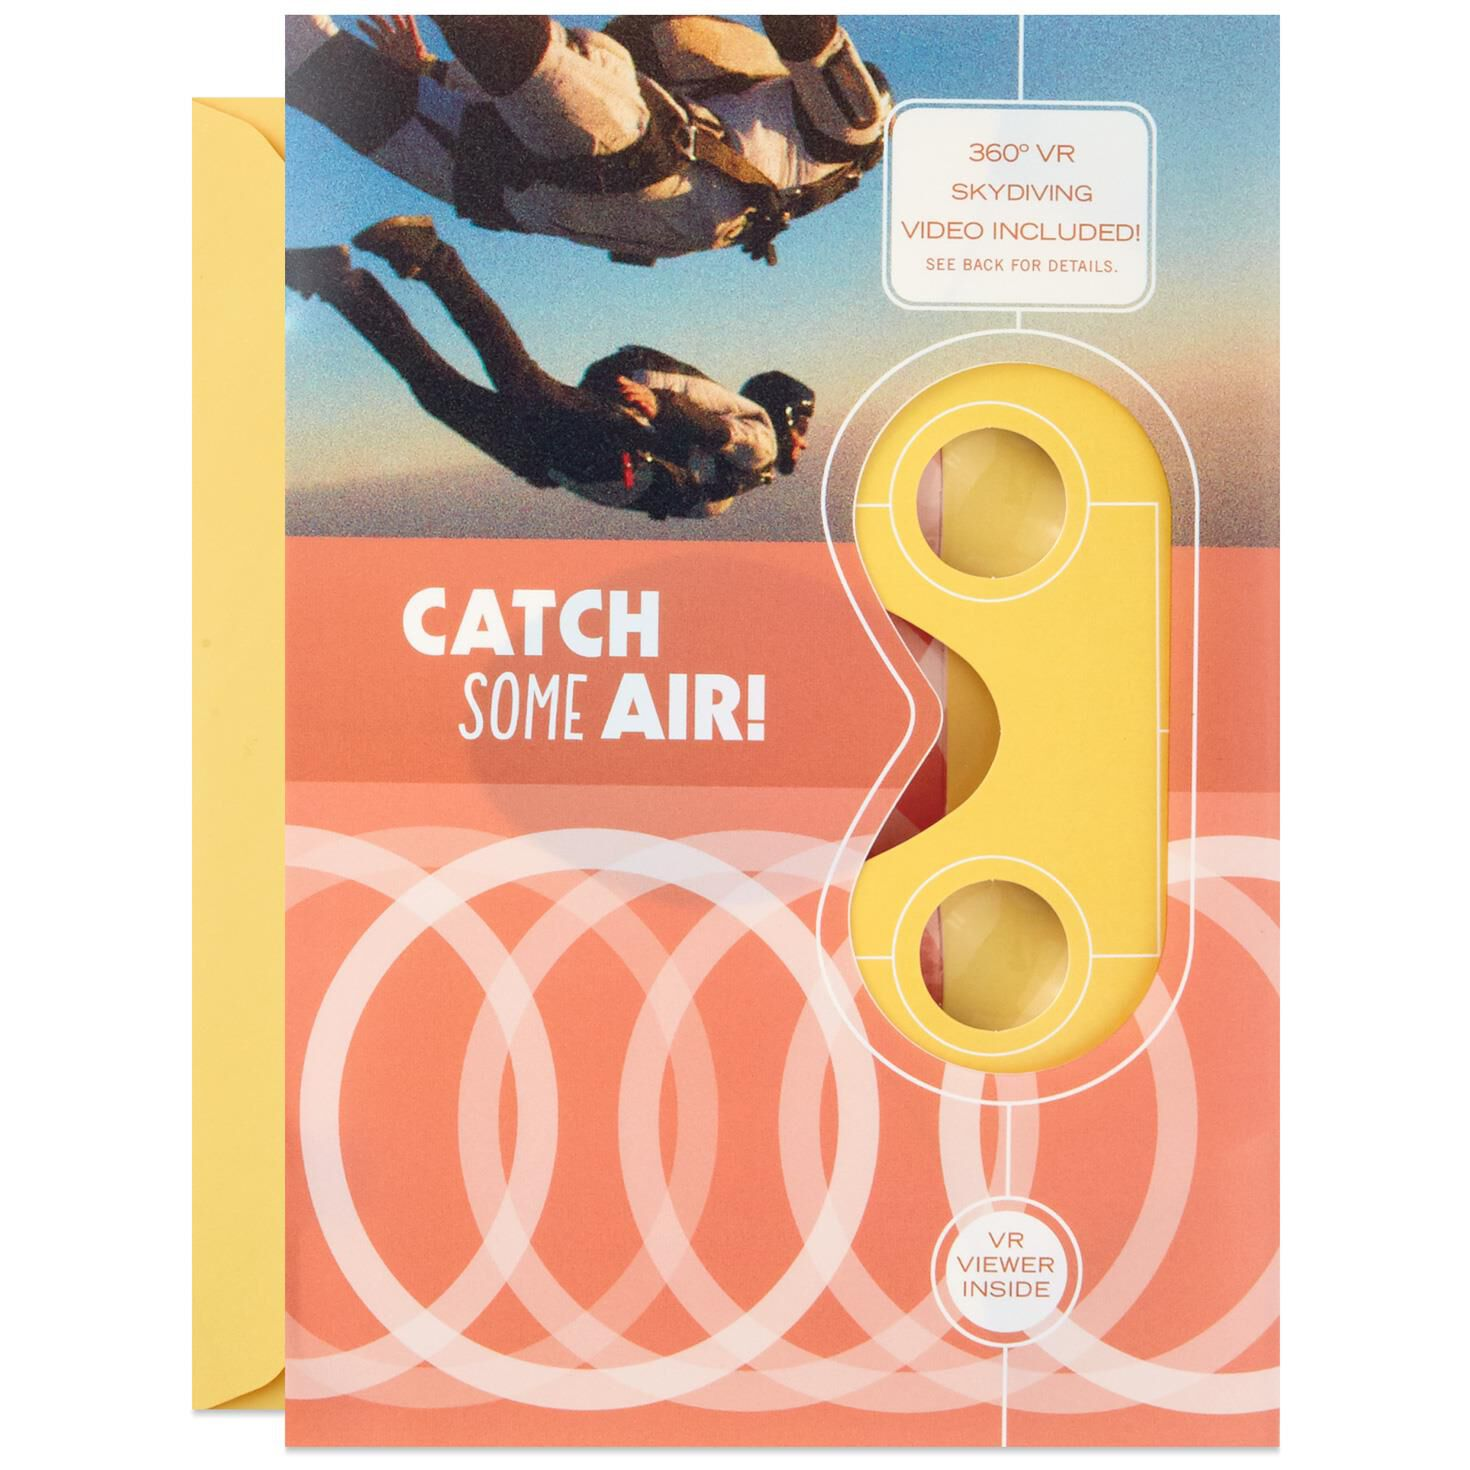 Catch Some Air Skydiving VR Birthday Card Greeting Cards Hallmark